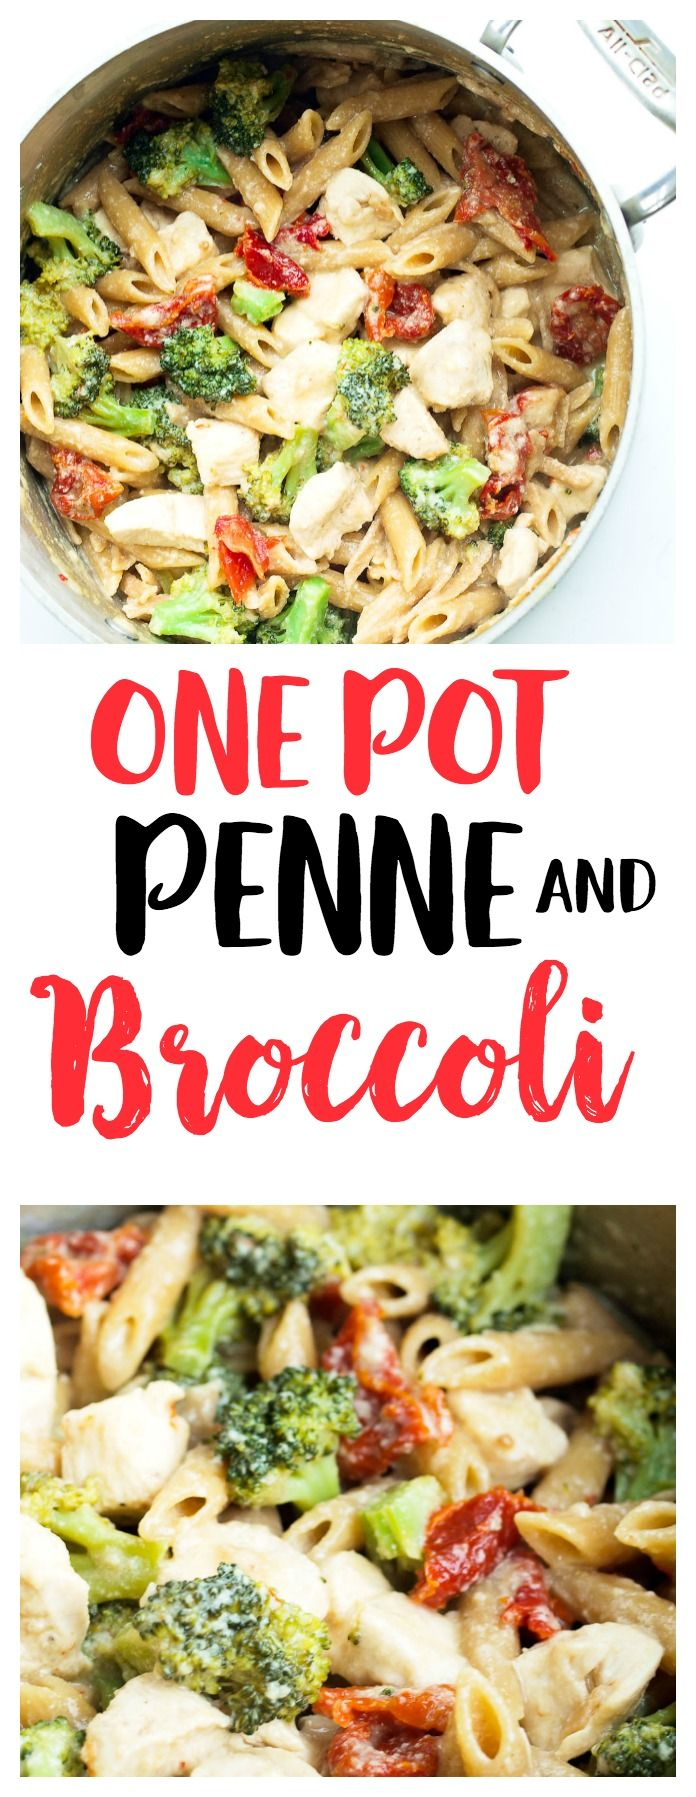 Creamy and Light! One Pot Pasta recipe--the best one pot penne with broccoli and sun-dried tomatoes. Healthy and delicious